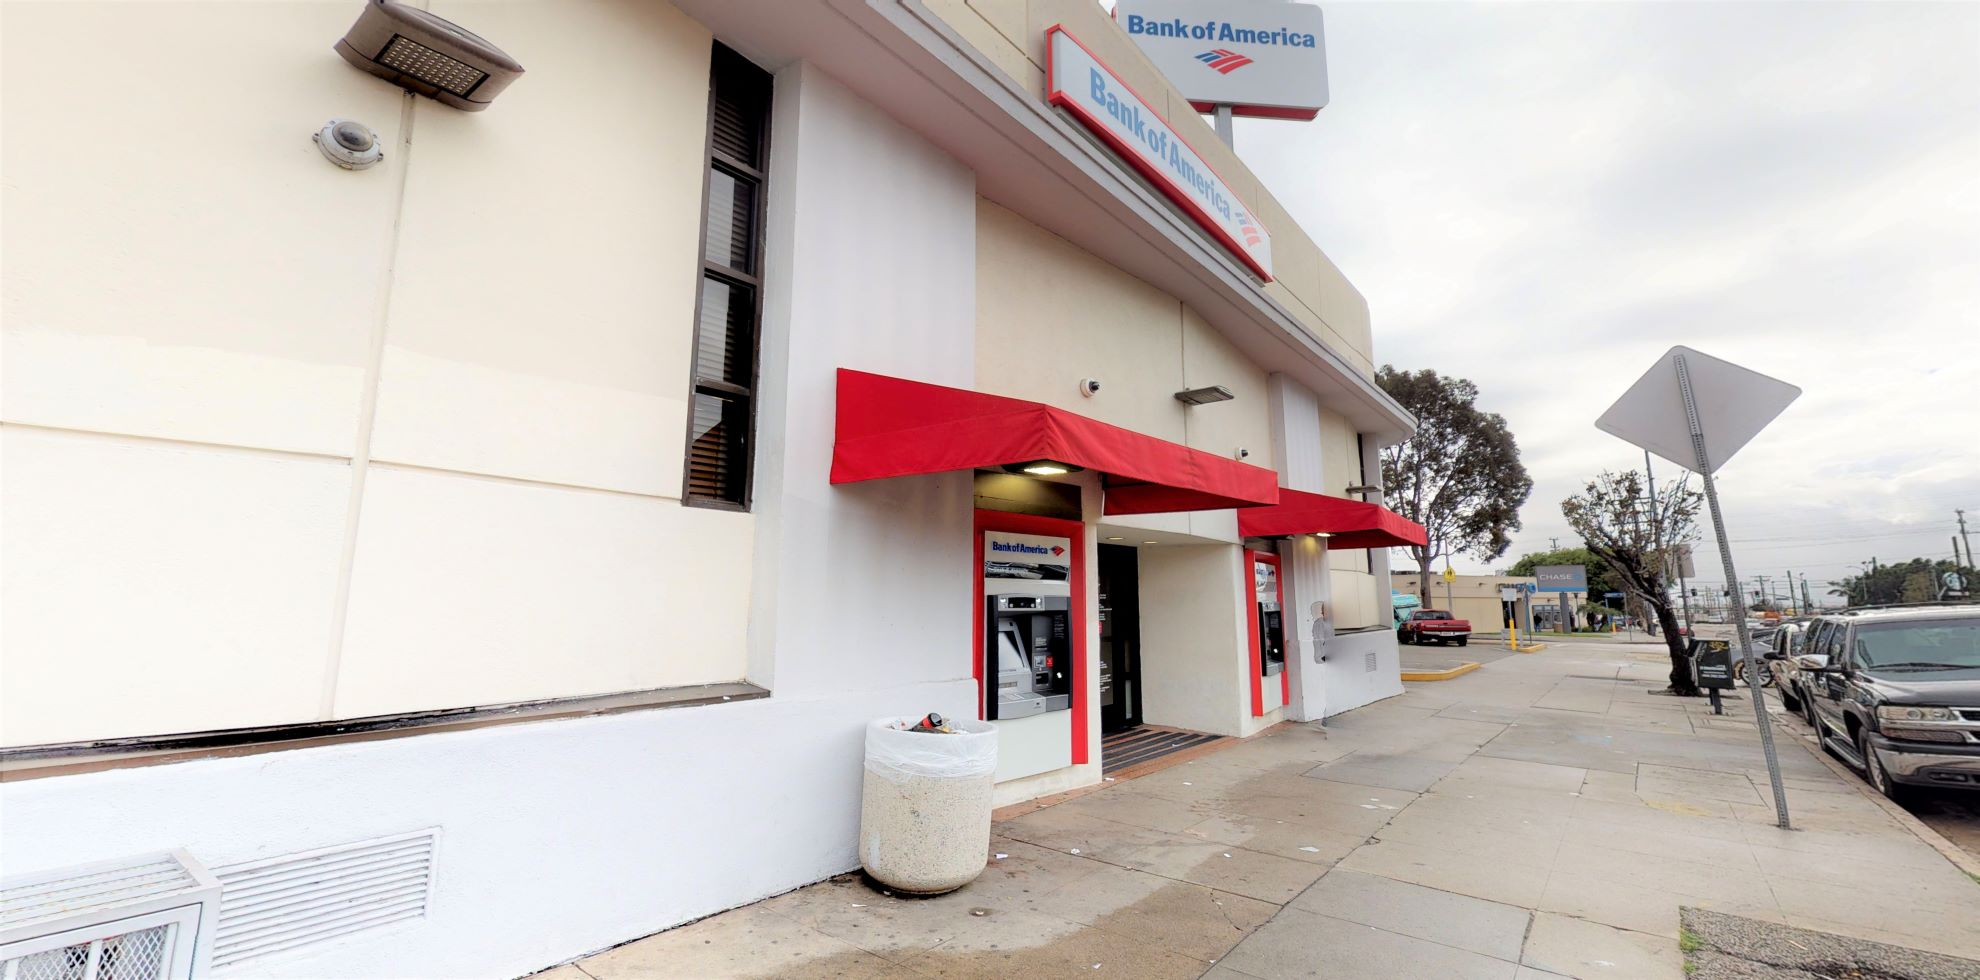 Bank of America financial center with walk-up ATM   1308 S Soto St, Los Angeles, CA 90023